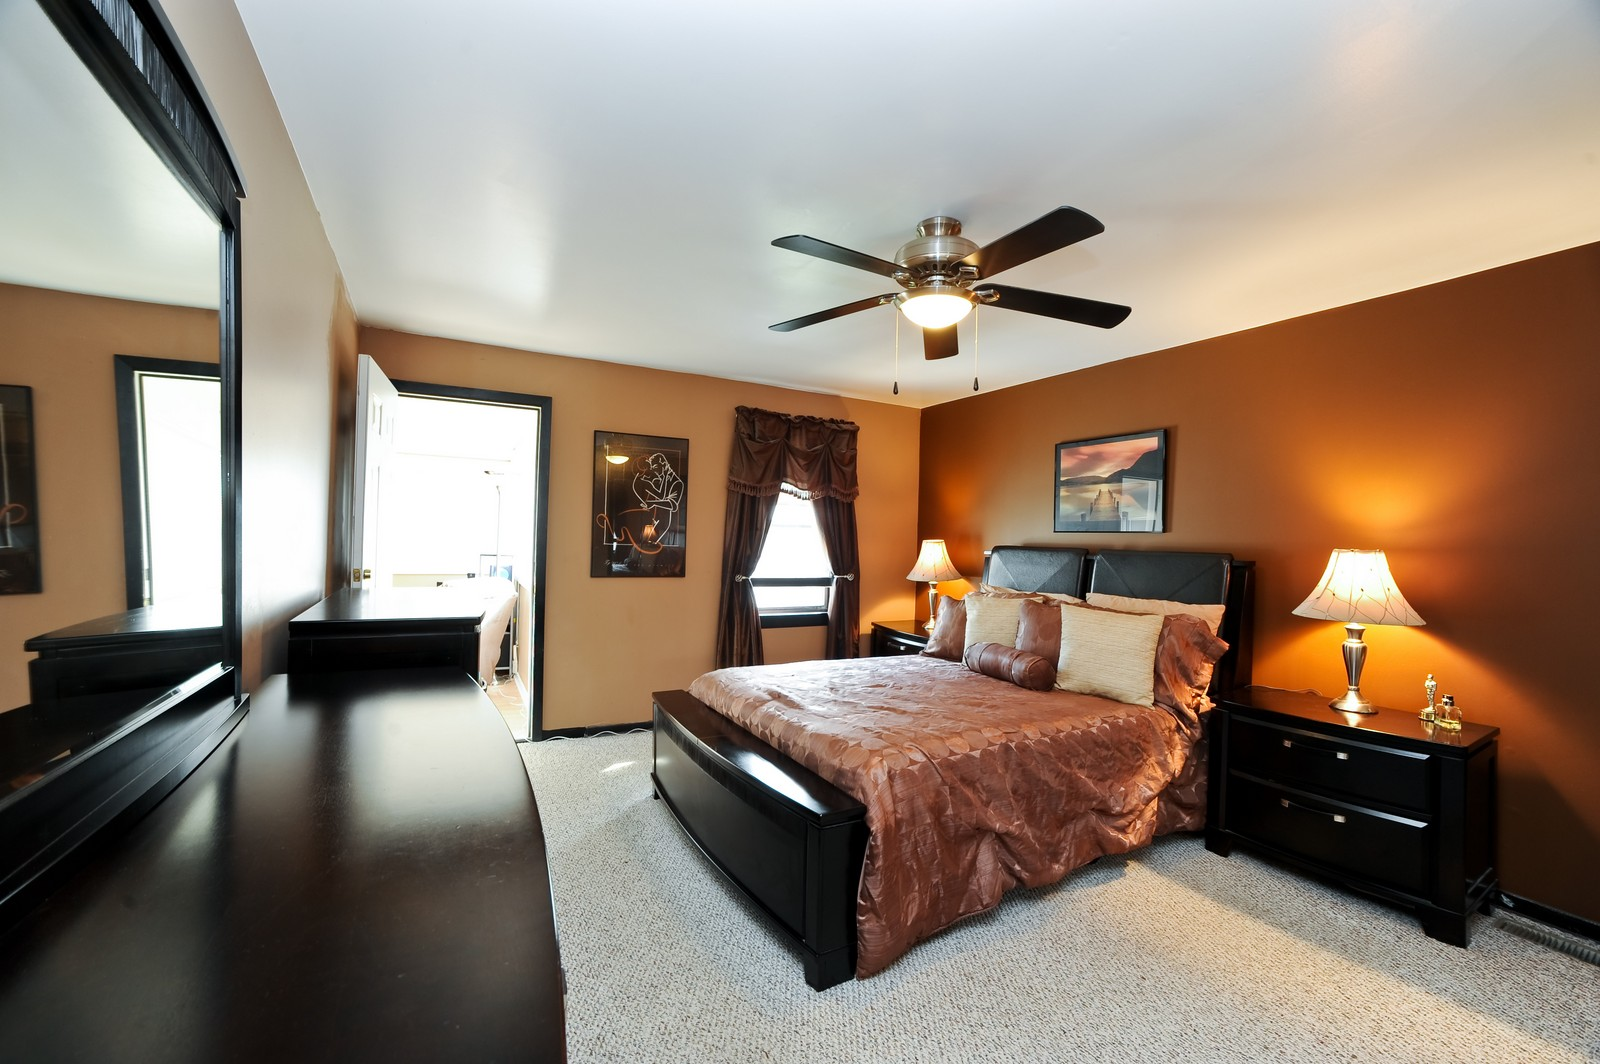 Real Estate Photography - 1837 Ashland Ave, Evanston, IL, 60201 - Master Bedroom